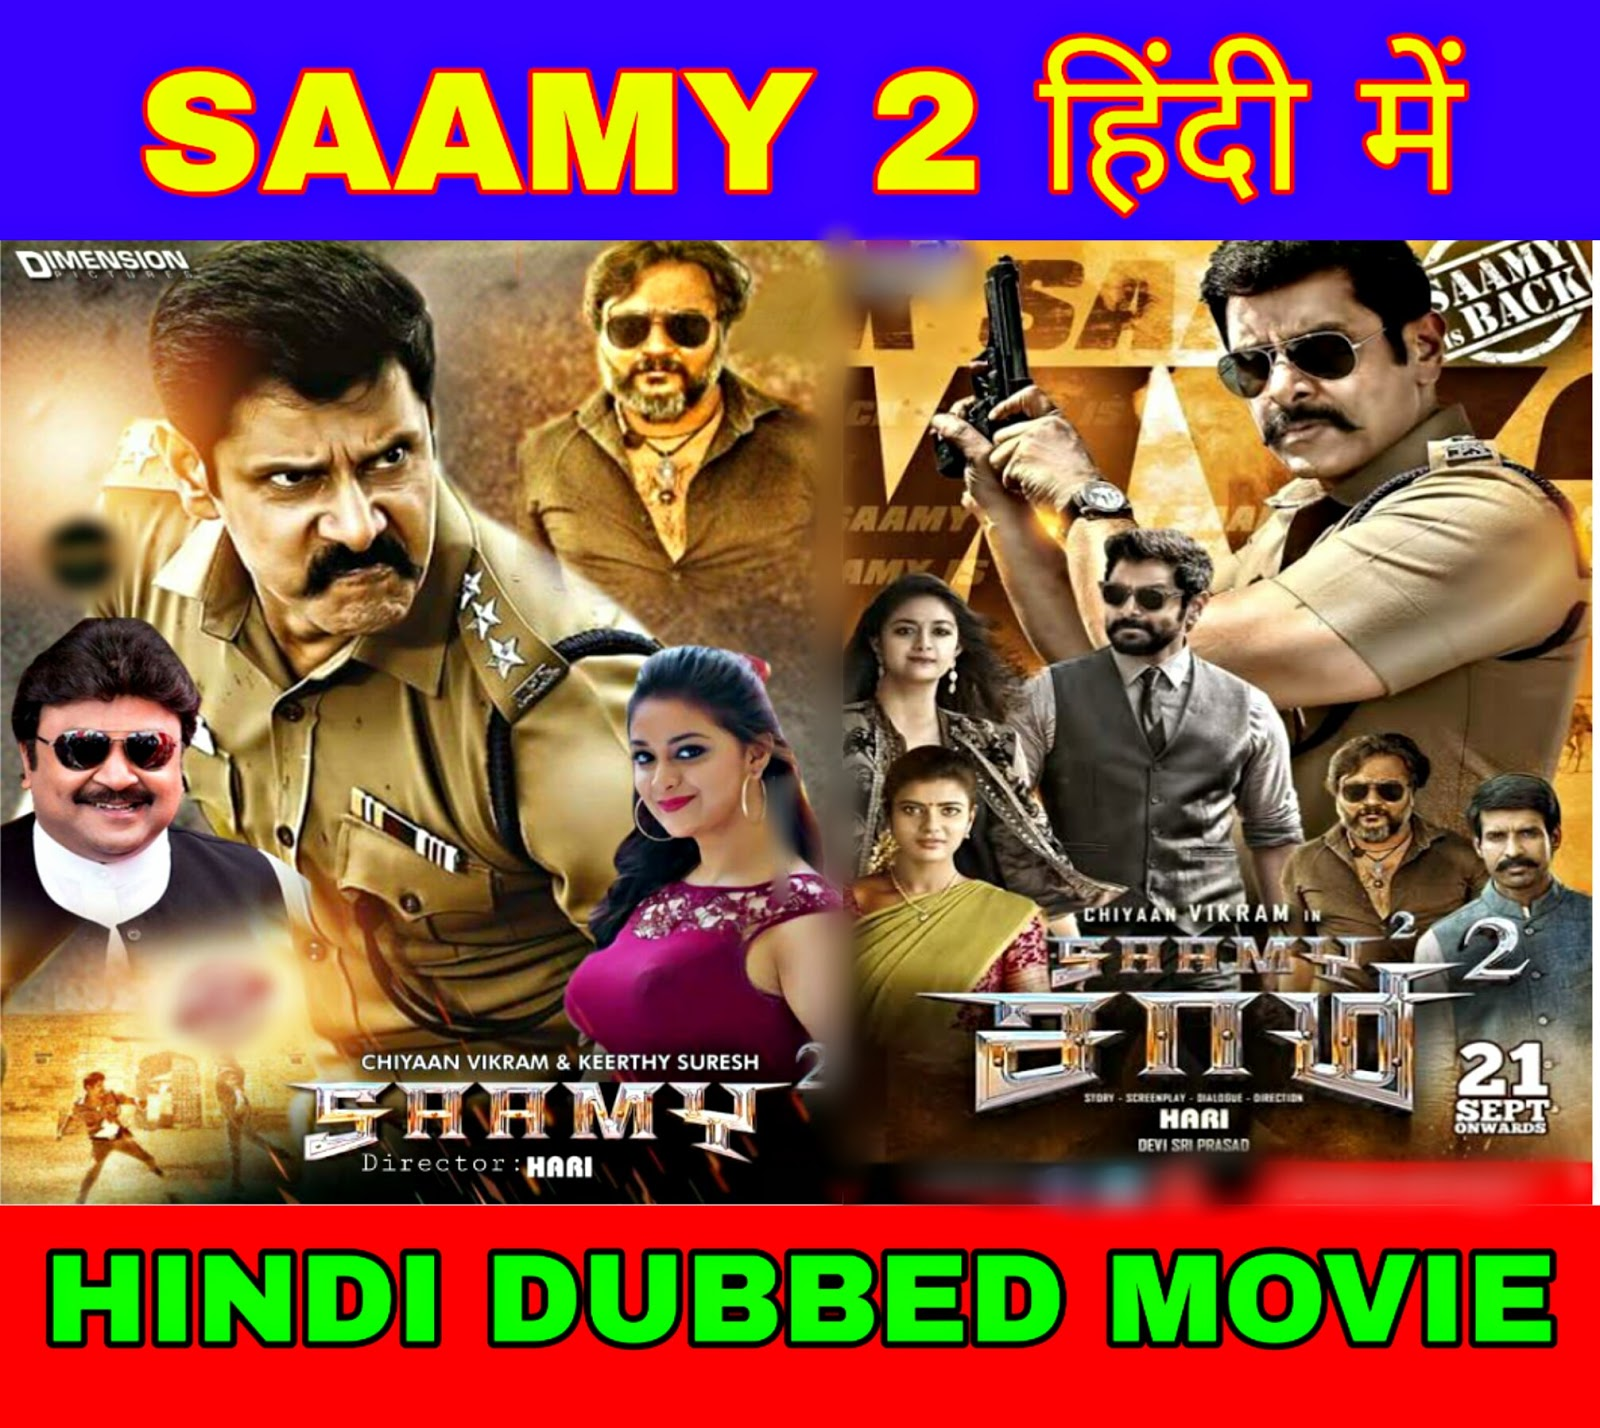 Saamy 2 Full Movie In Hindi Dubbed Download Fimywap 720P